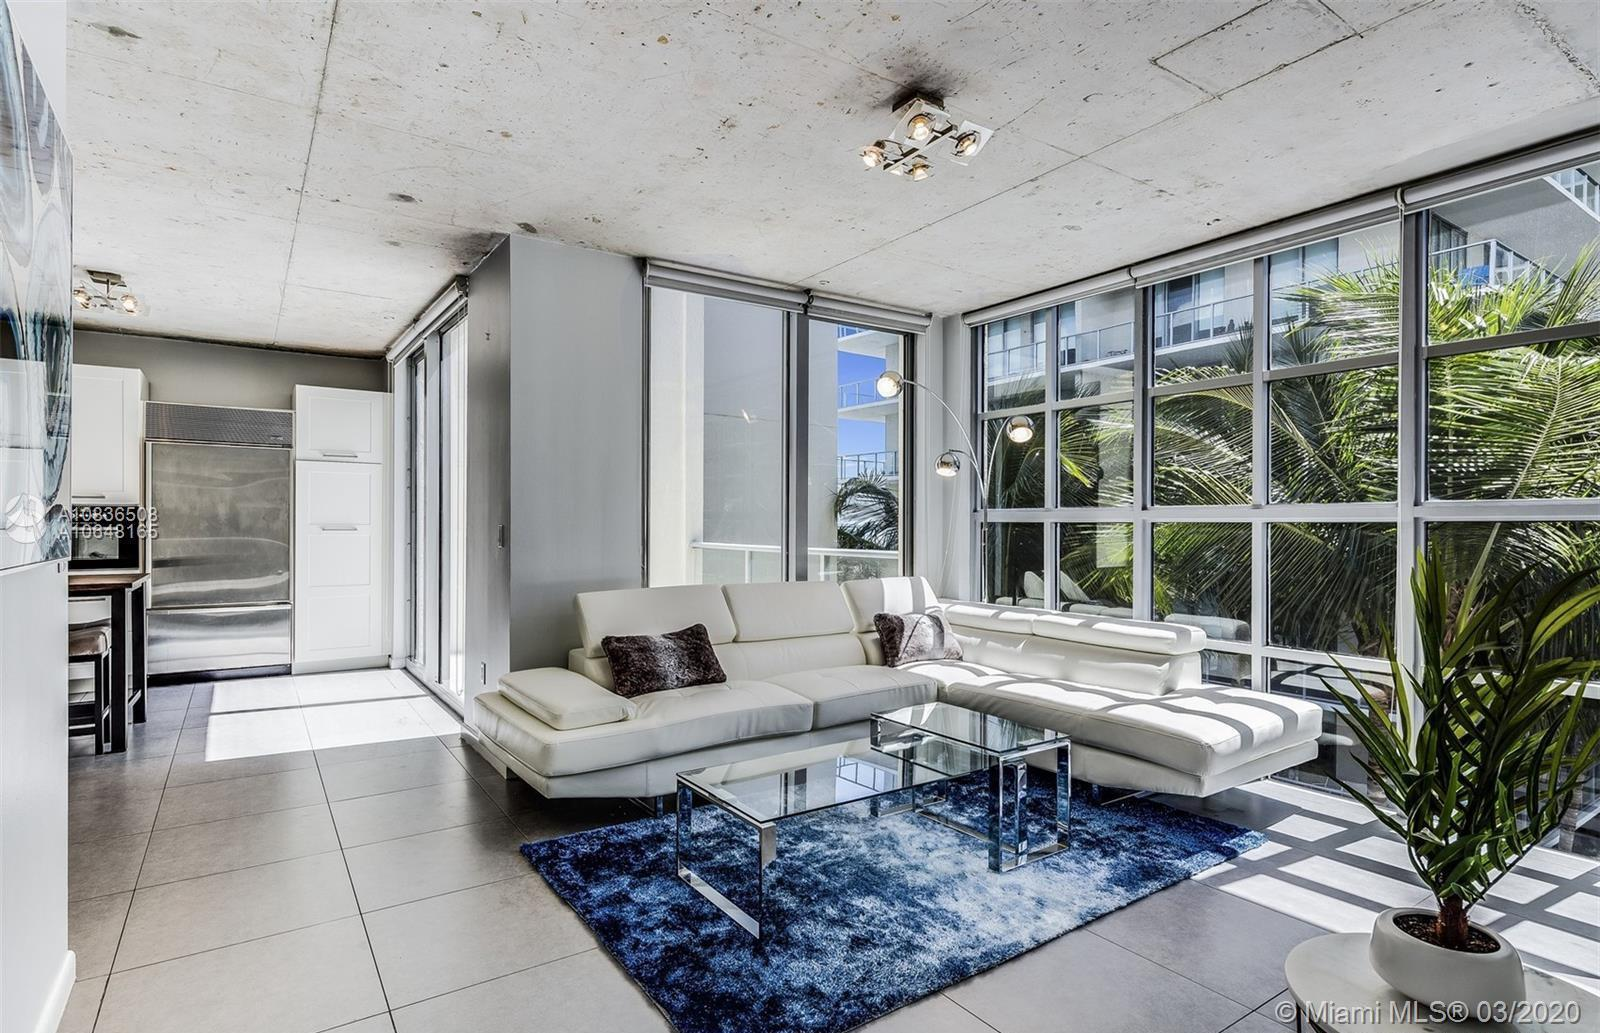 Duplex Penthouse in the Midrise at 2Midtown! Steps to the super chic Miami Design District, this 2 b